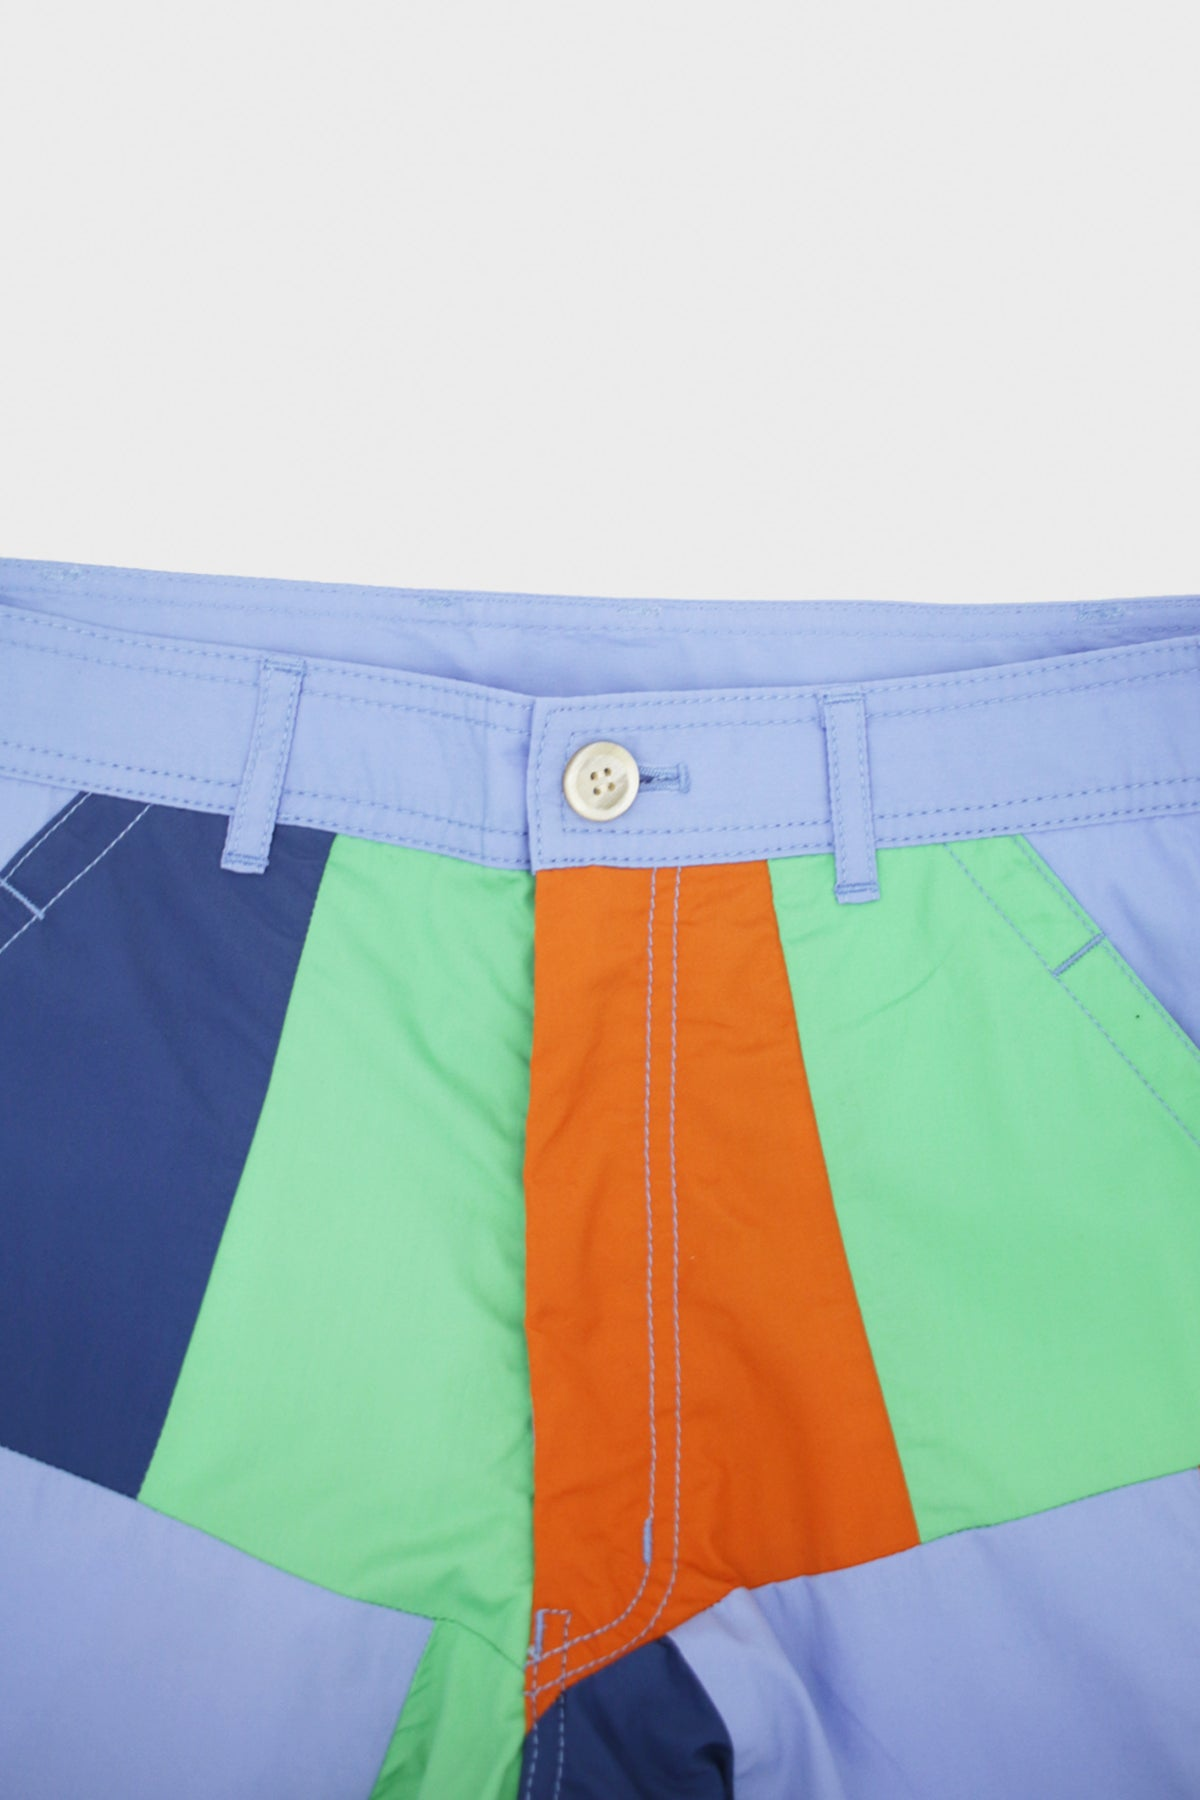 Comme des Garçons SHIRT - Woven Patchwork Pants - Green/Blue/Orange - Canoe Club